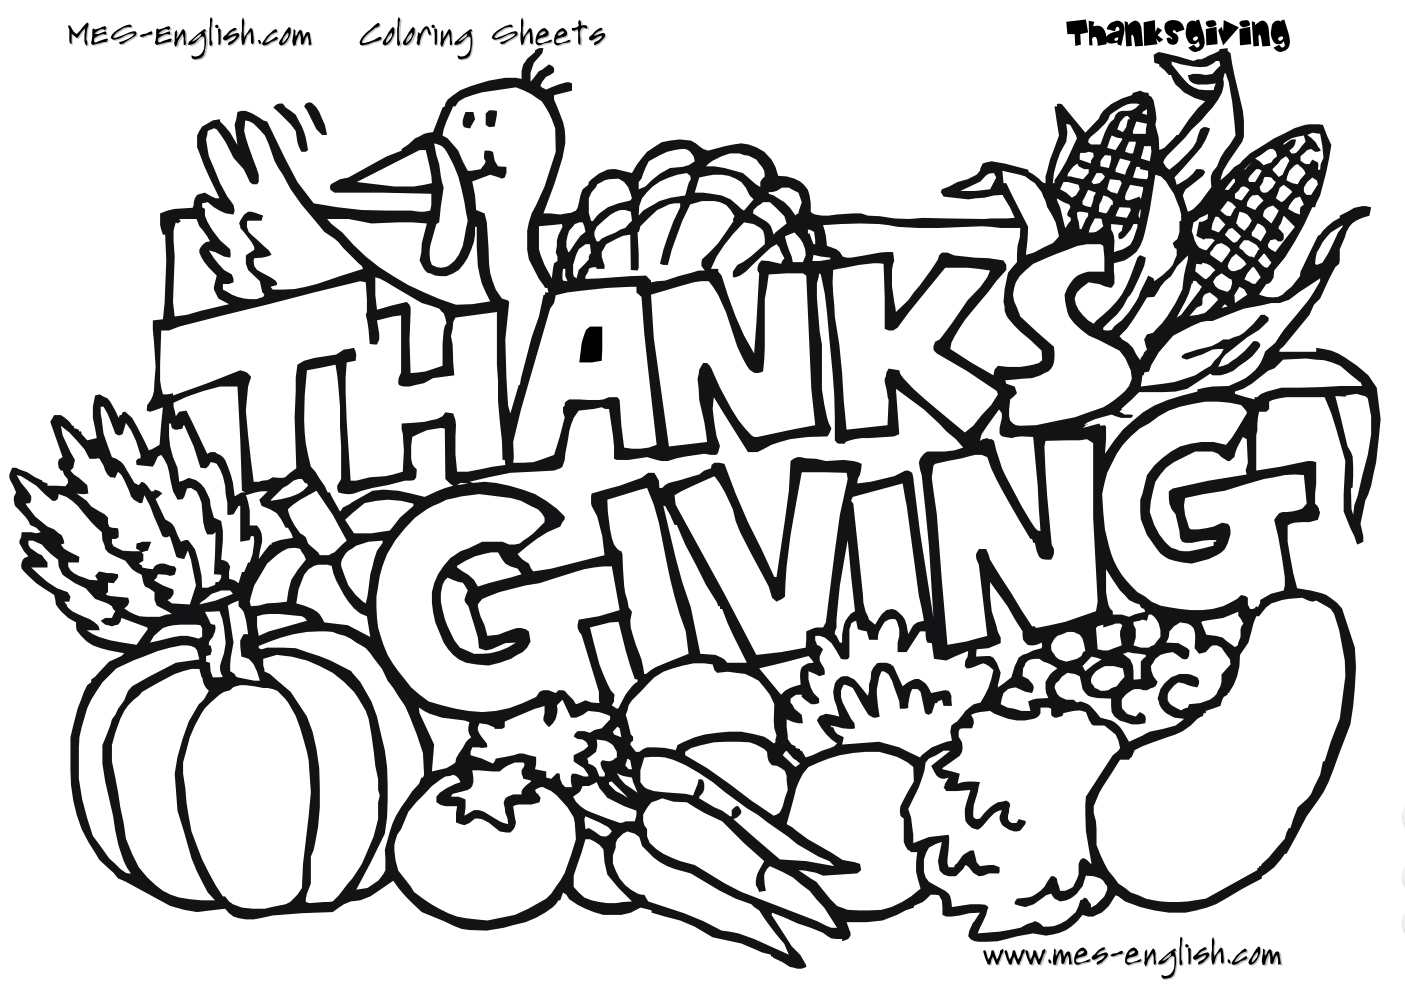 Thanksgiving Day Coloring Pages Free Coloring Pages Kids Thanksgiving Coloring Page Count Your